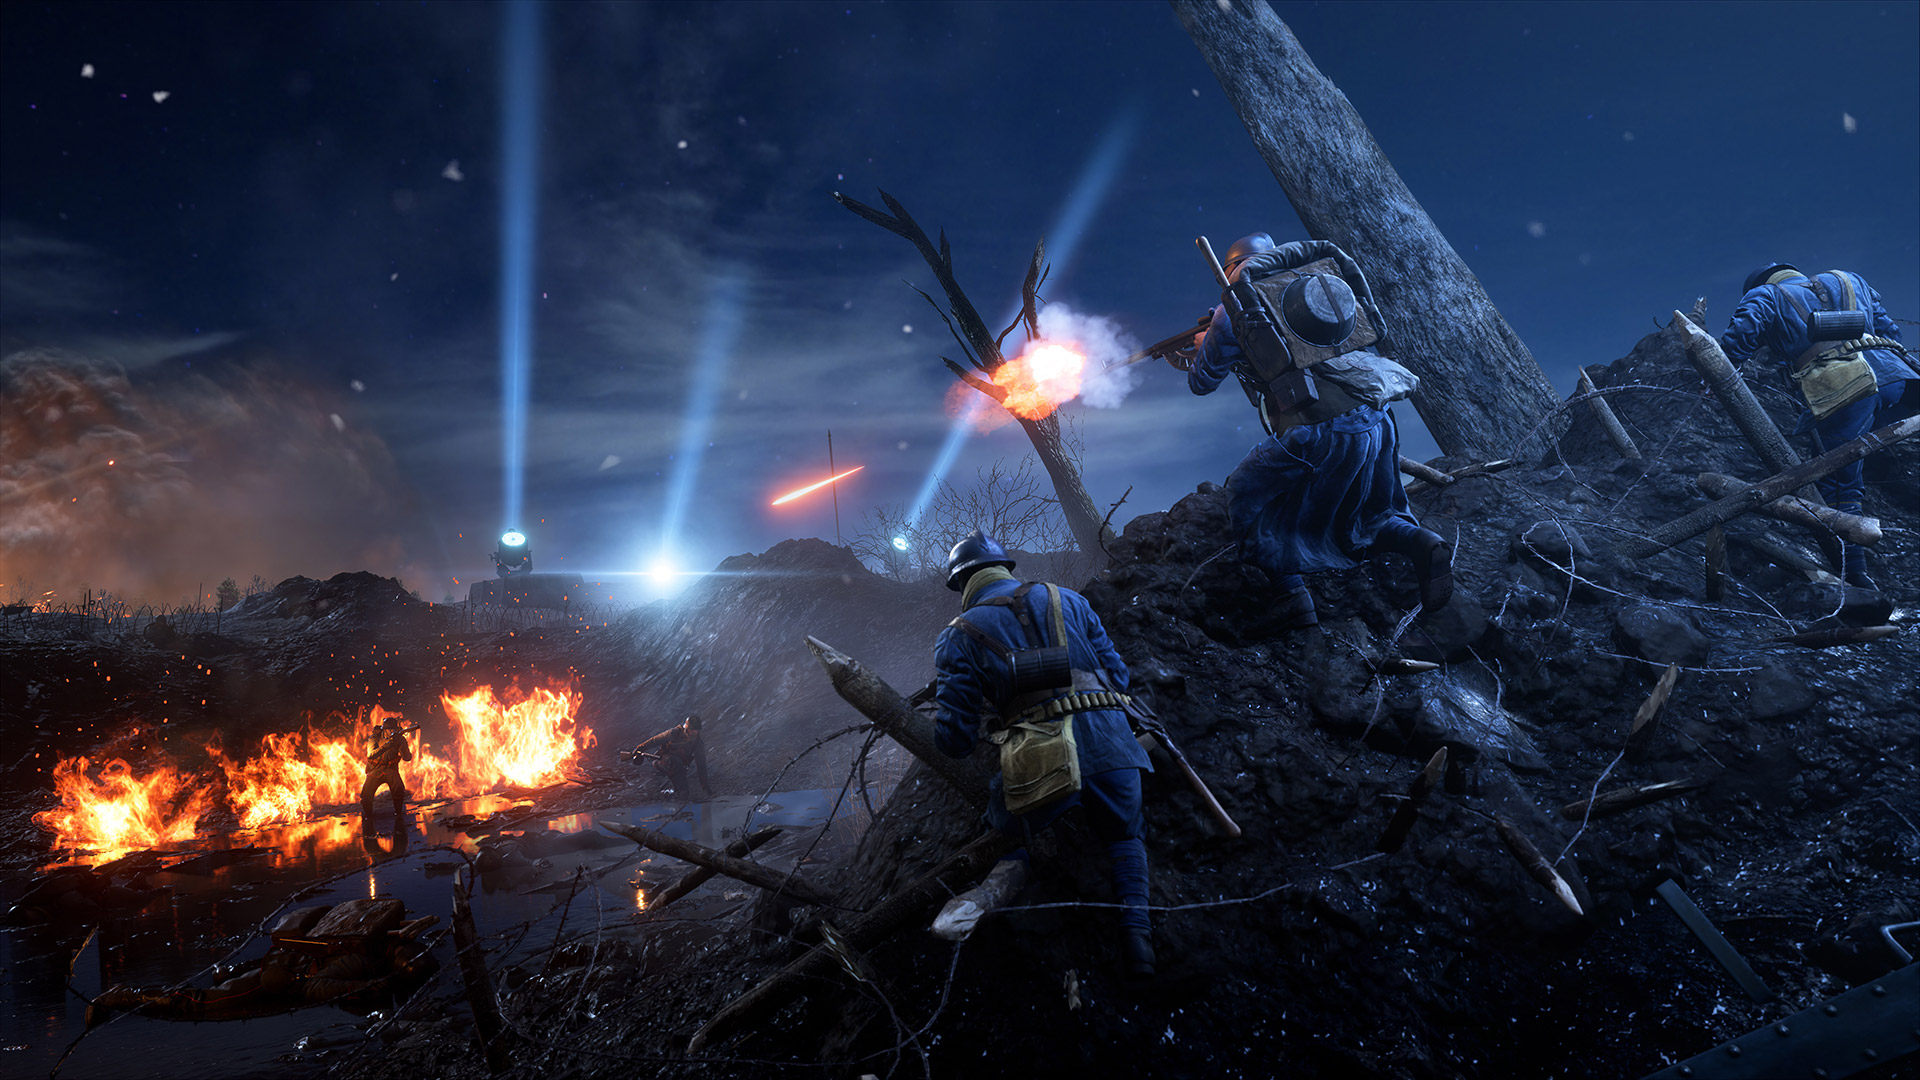 Battlefield 1 expansion In The Name of The Tsar arrives in